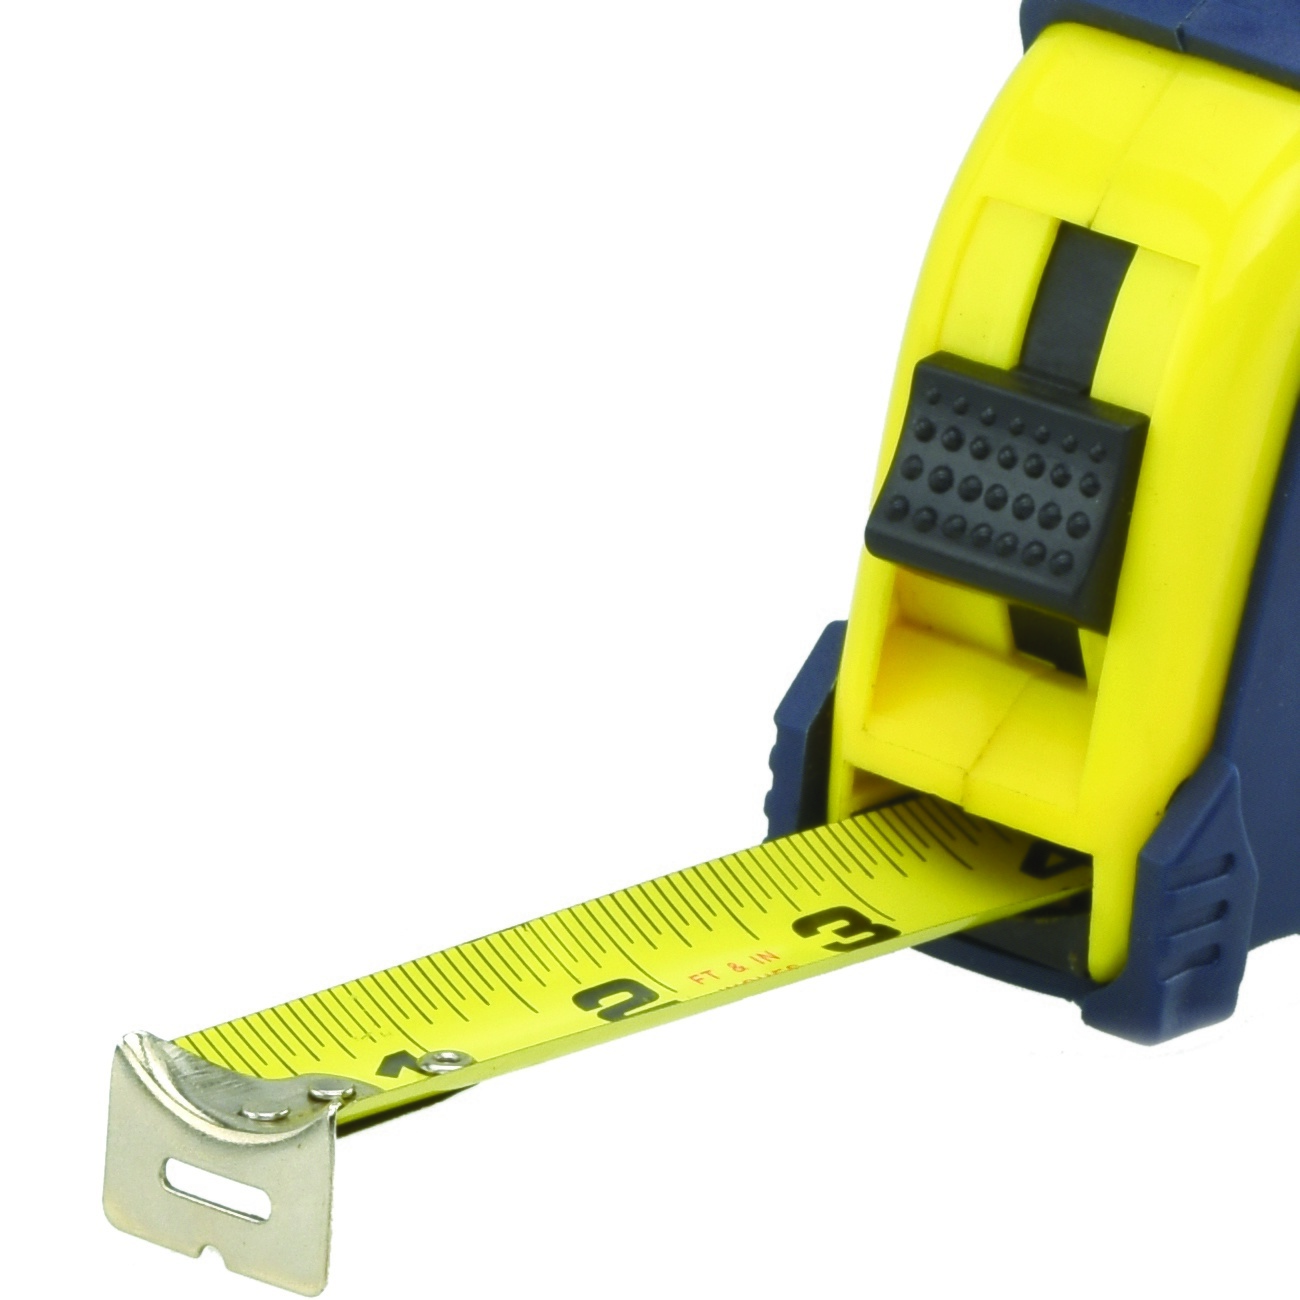 measuring tape 33 39 ft x 1 1 4 inch pause function button lock sae mm contractor ebay. Black Bedroom Furniture Sets. Home Design Ideas